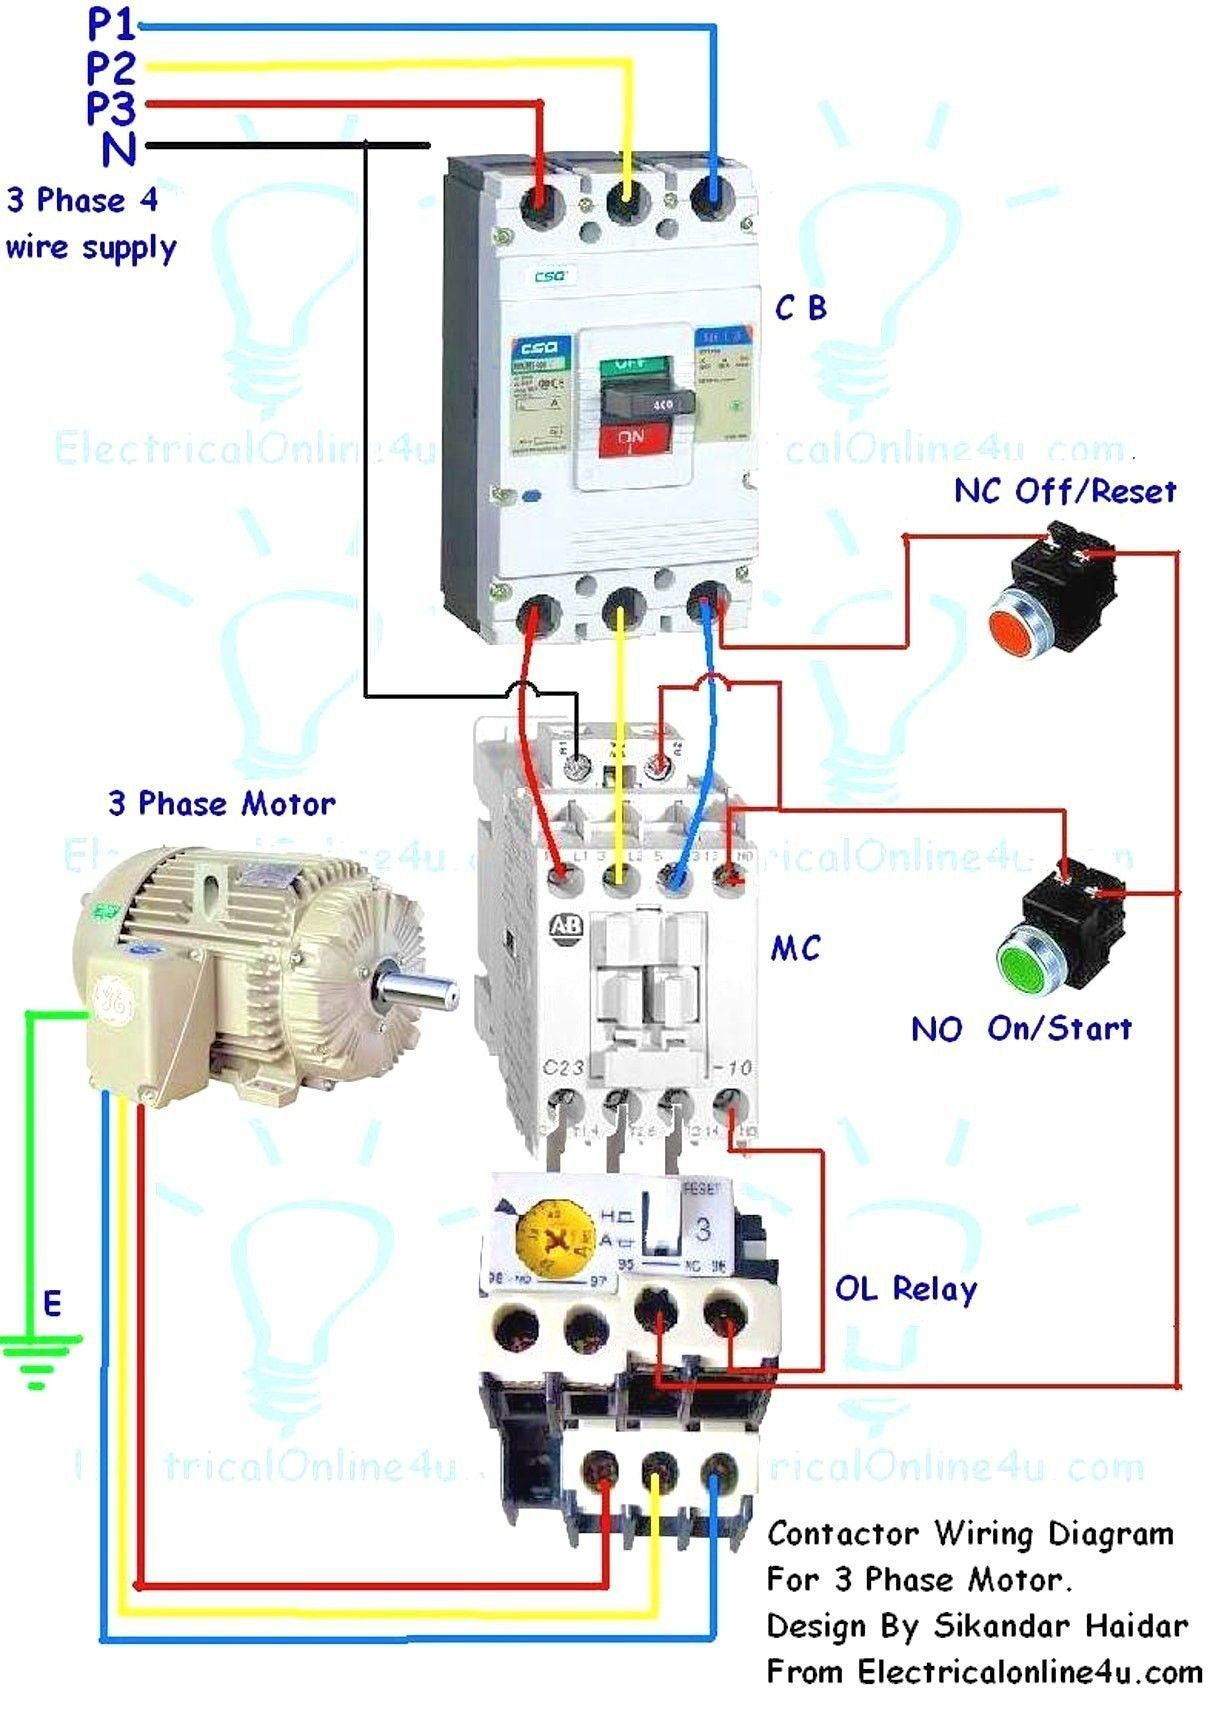 Electrical Contactor Wiring Diagram Dat Wiring Diagrams In 2020 Electrical Circuit Diagram Circuit Diagram Electrical Projects